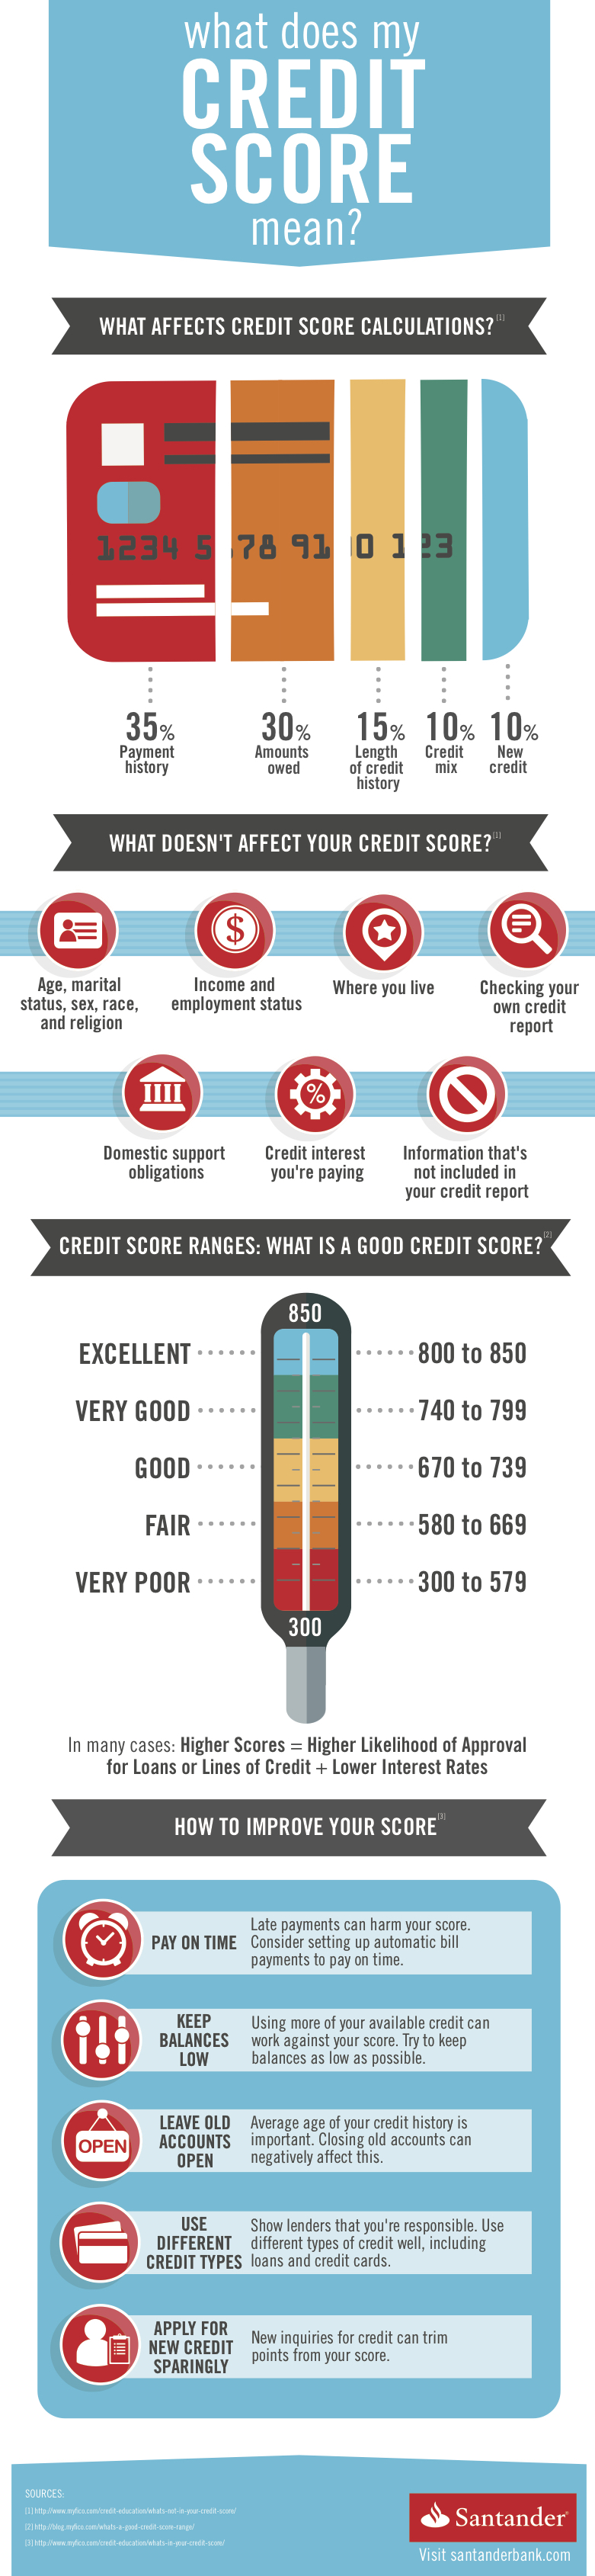 My Credit Score >> What Does My Credit Score Mean Santander Bank